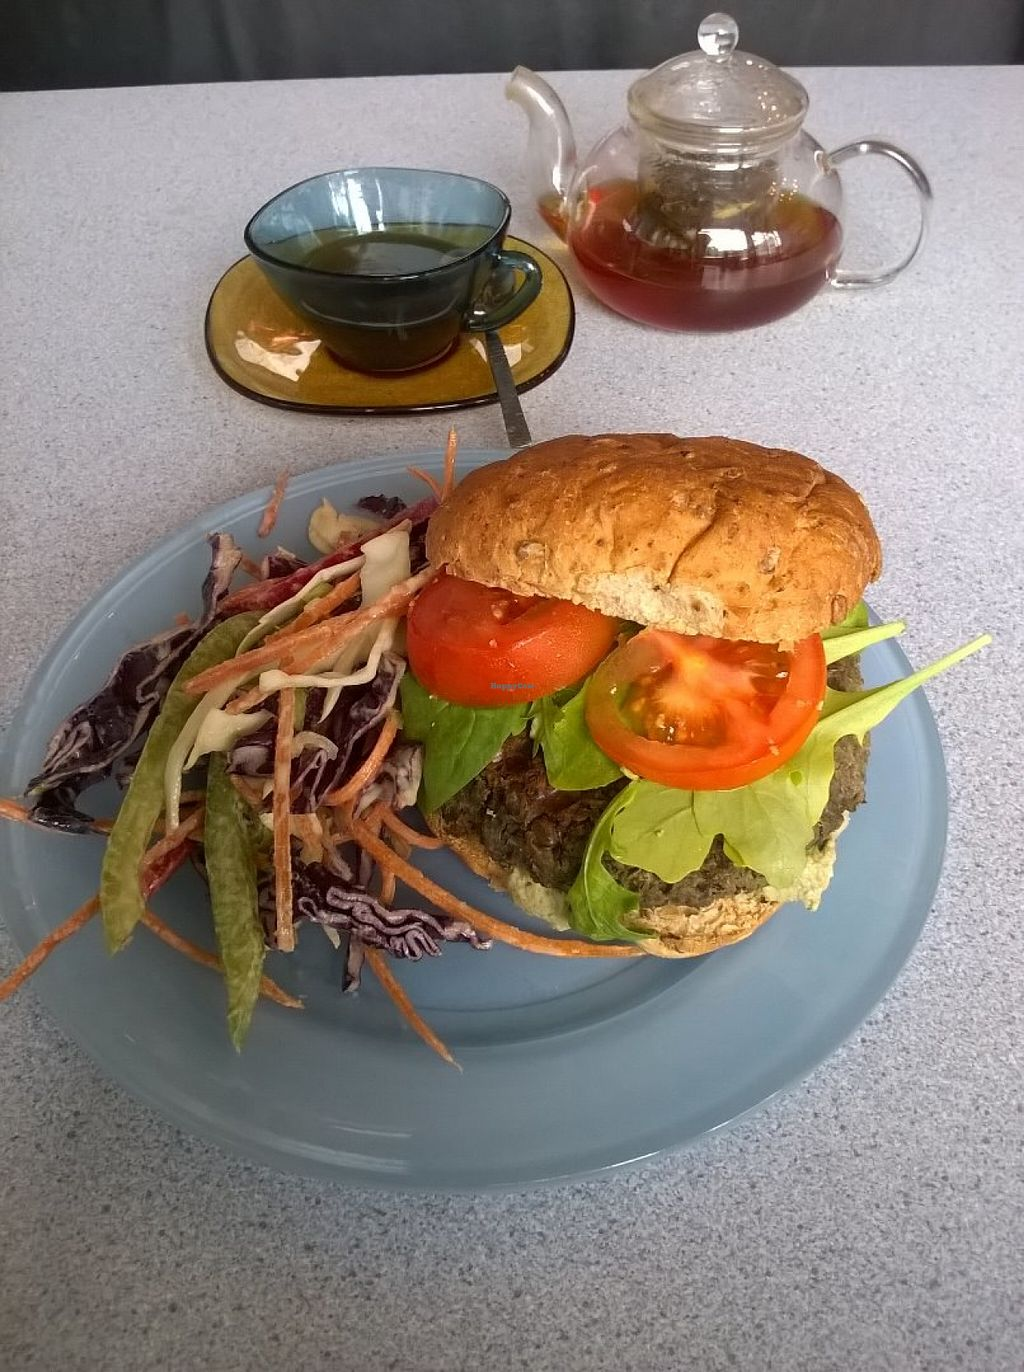 """Photo of Pulp Fiction Future Food and Juice Cafe  by <a href=""""/members/profile/deadpledge"""">deadpledge</a> <br/>Vegan mushroom, lentil and tarragon burger with side slaw <br/> June 16, 2016  - <a href='/contact/abuse/image/59089/154267'>Report</a>"""